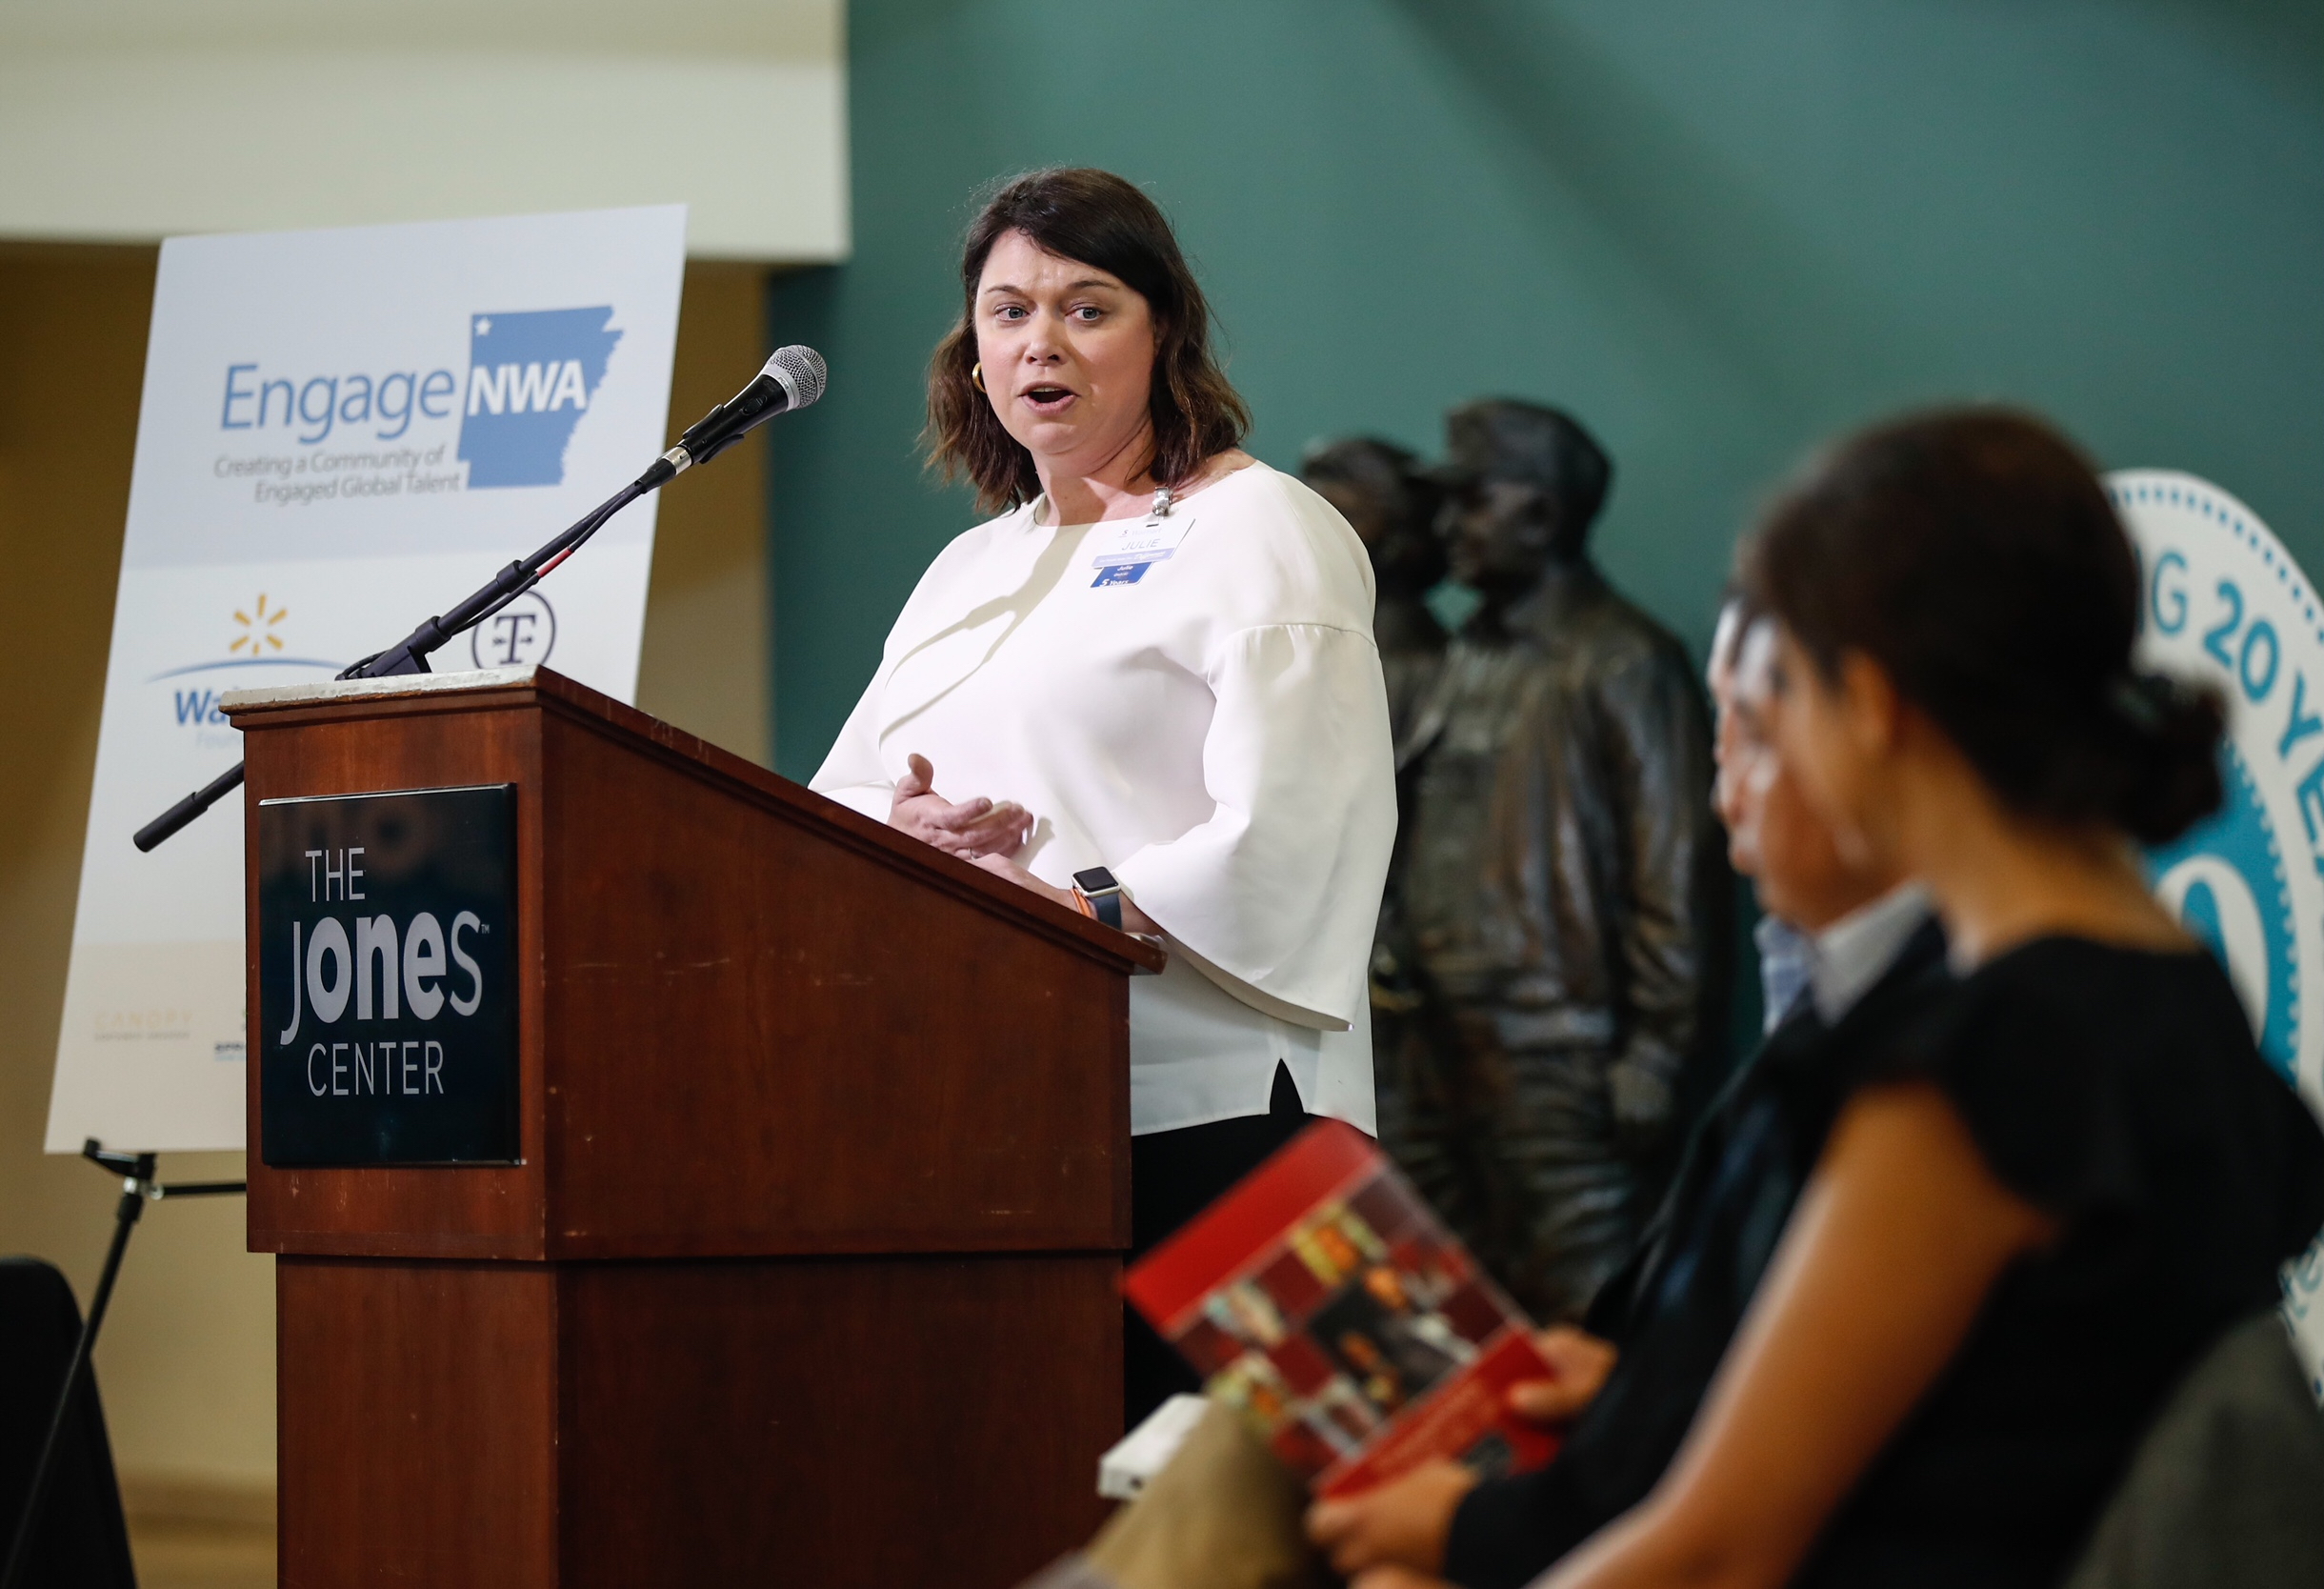 Julie Gerhrki, Vice President of Walmart Foundation speaks during the launch event on July 31 at The Jones Center.